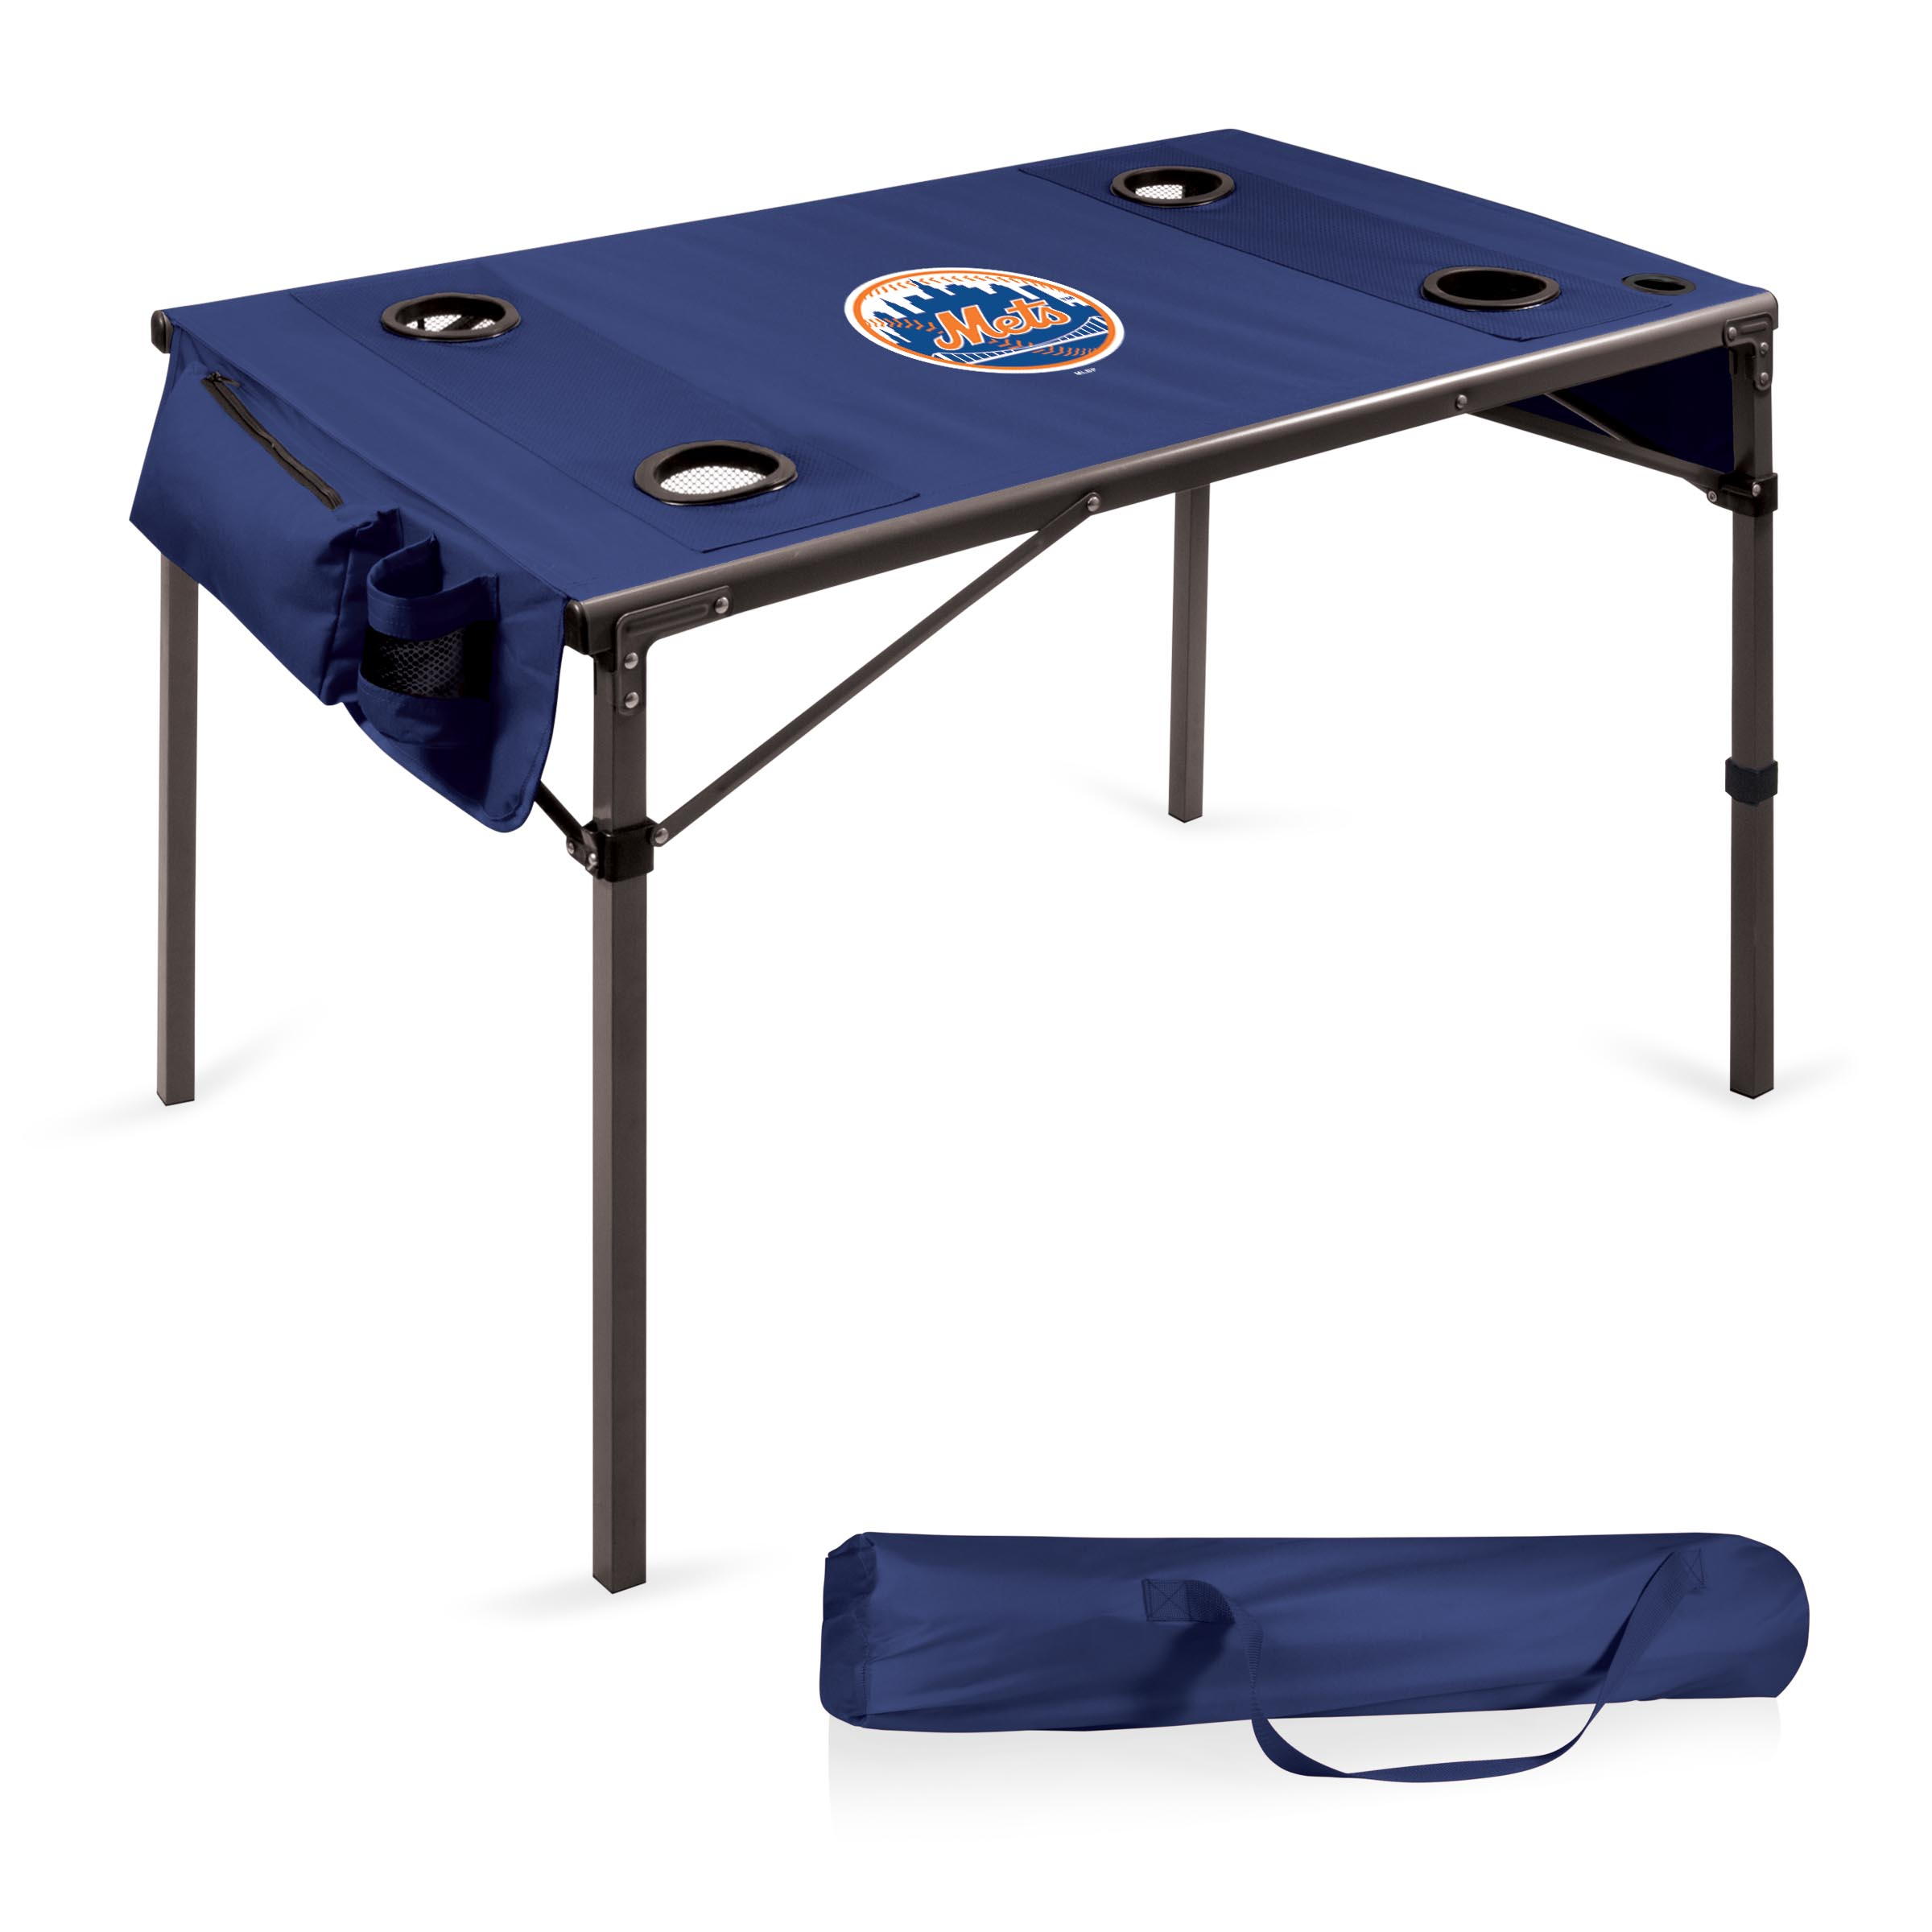 New York Mets Portable Folding Travel Table - Navy - No Size